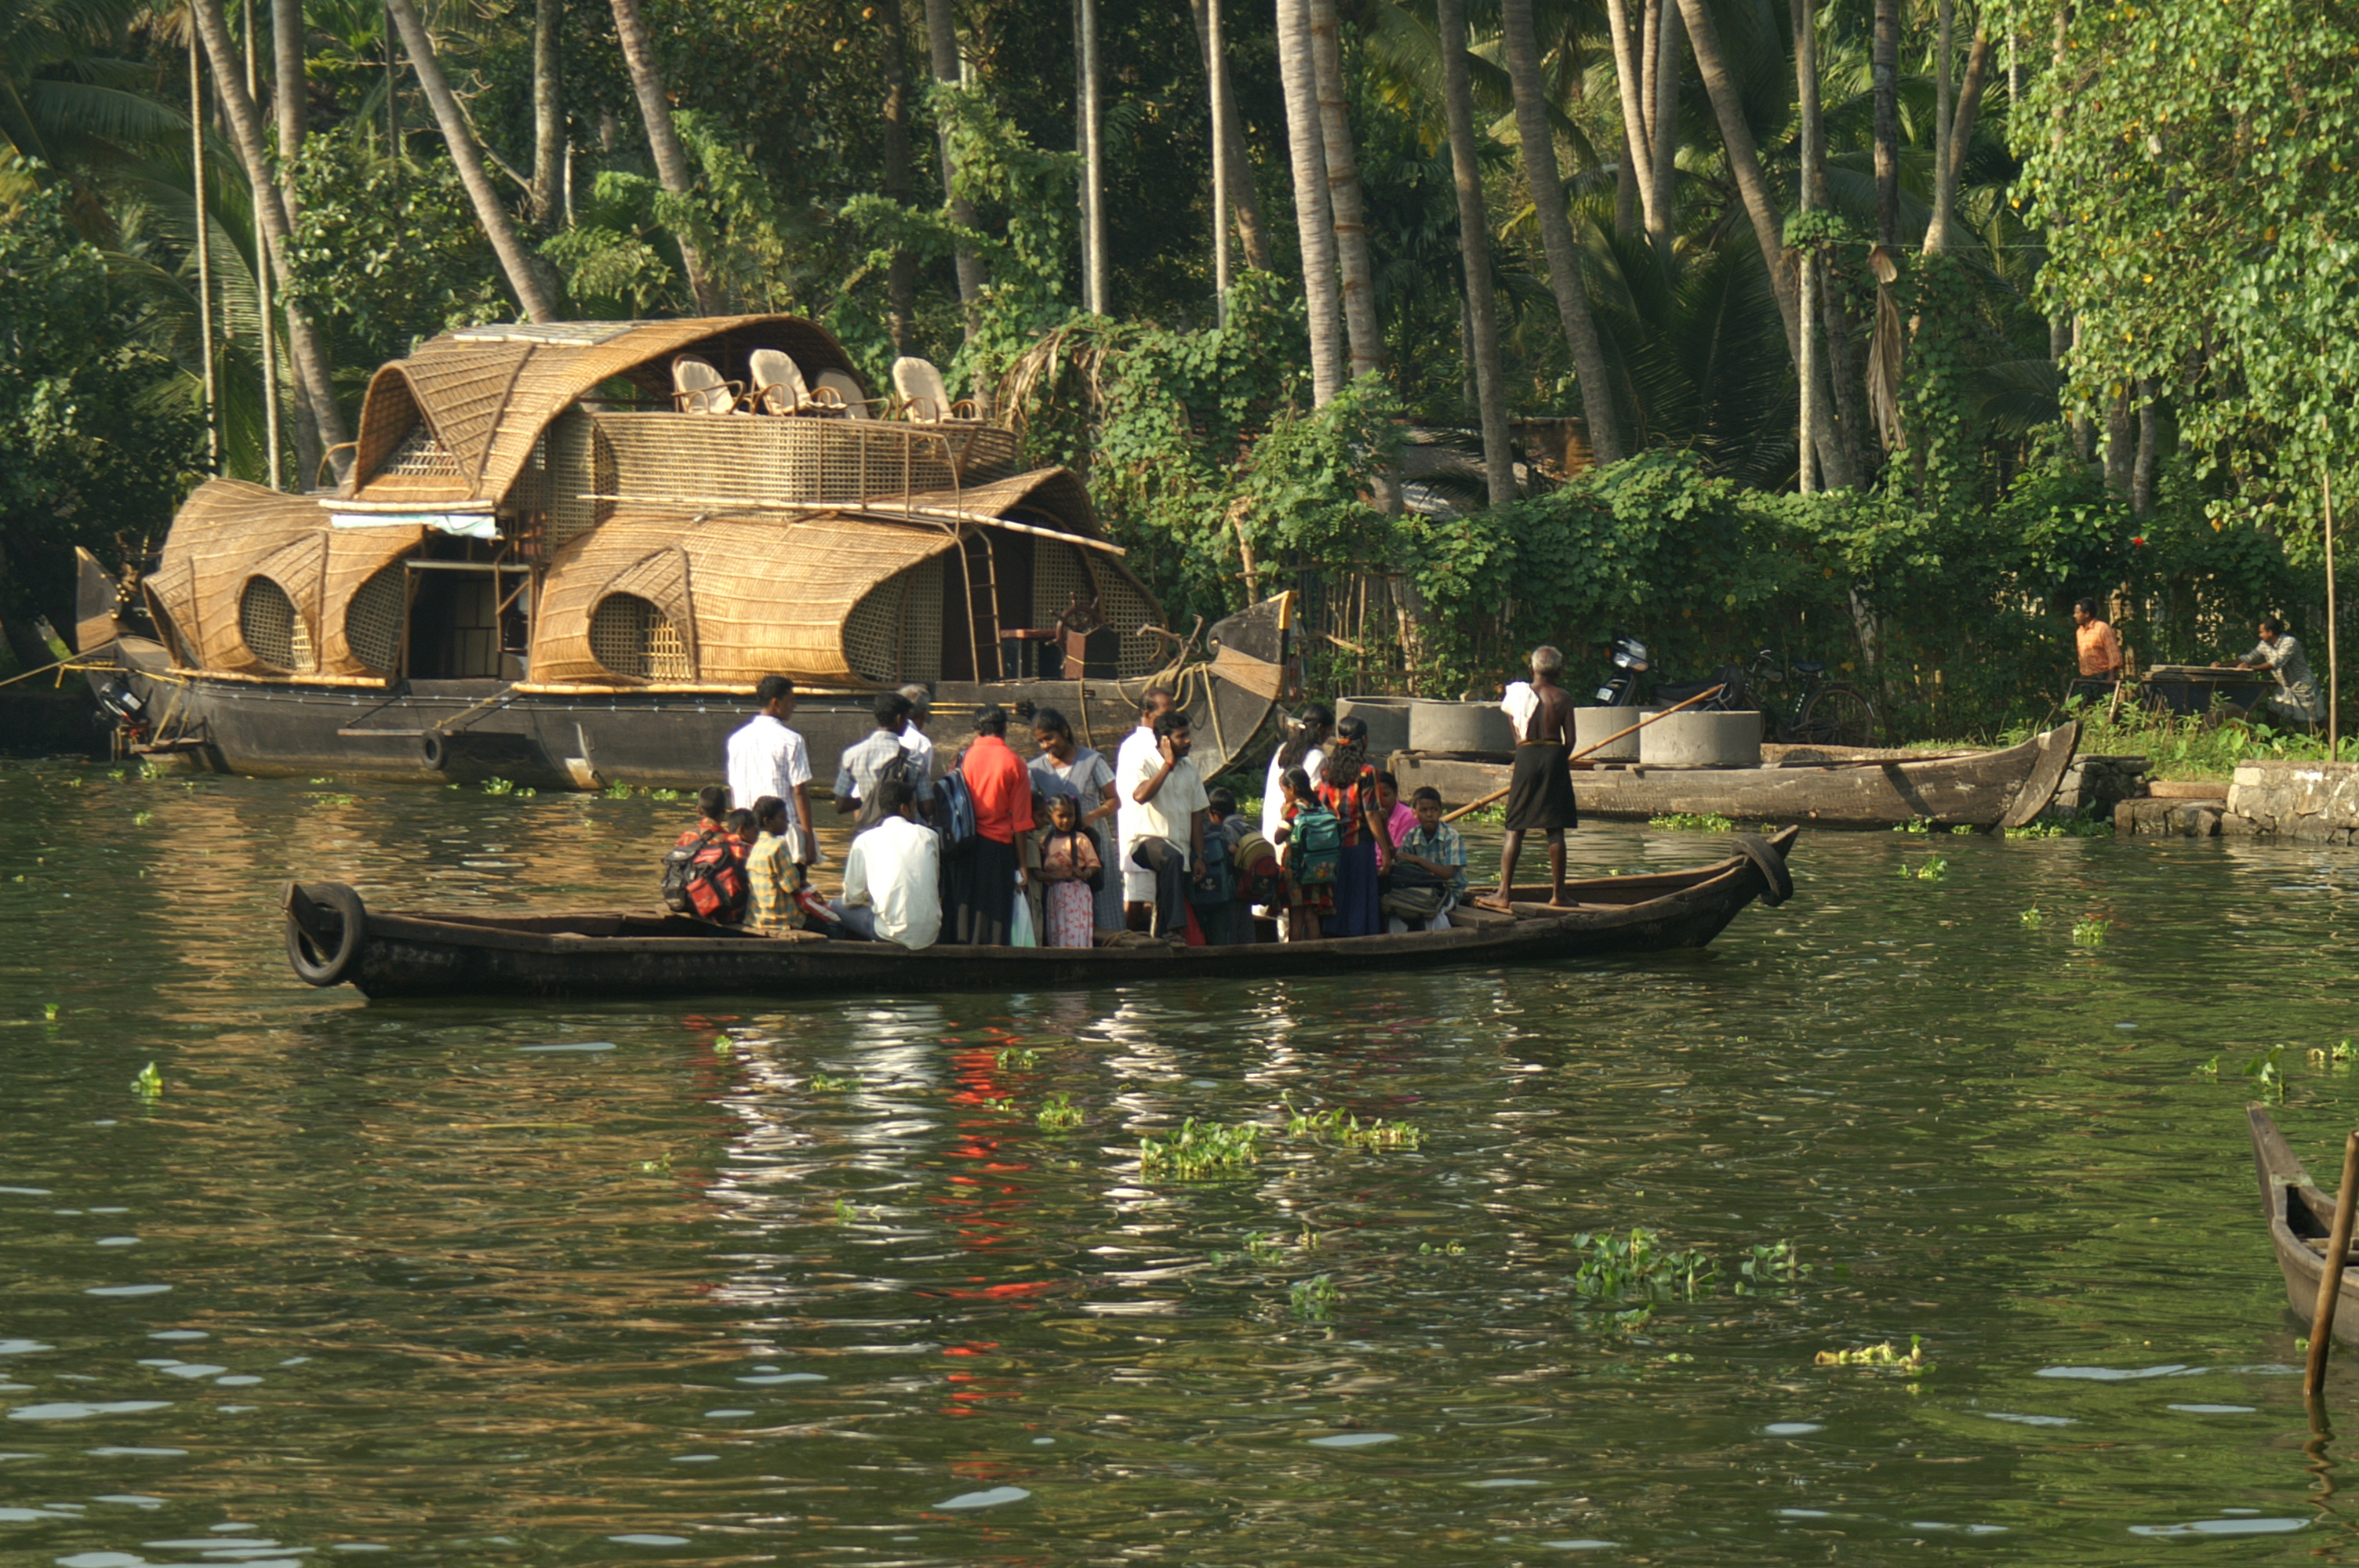 File:Allepey Water Transport.jpg